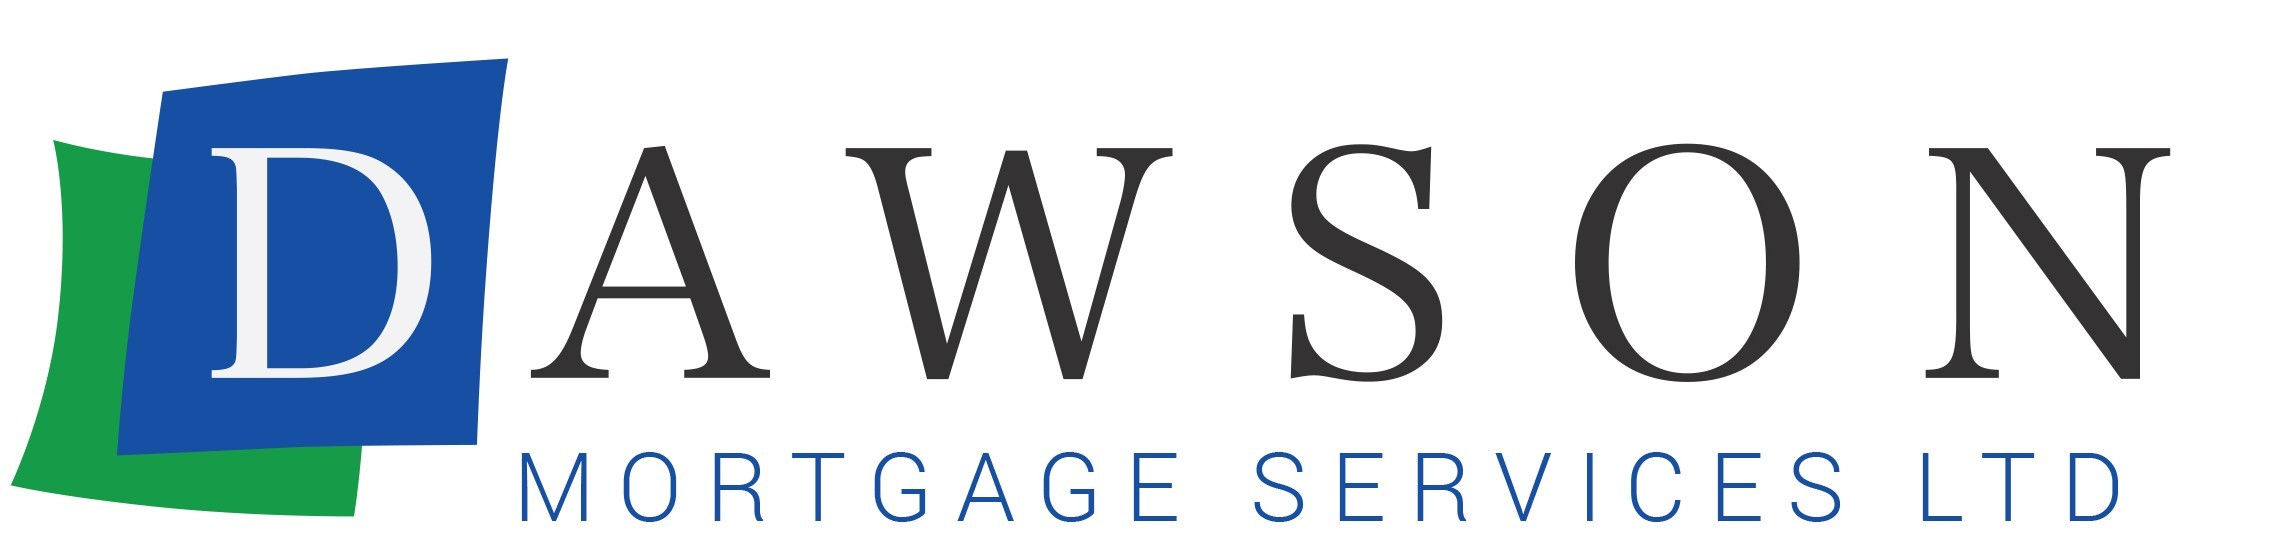 Dawson Mortgage Services Ltd Logo